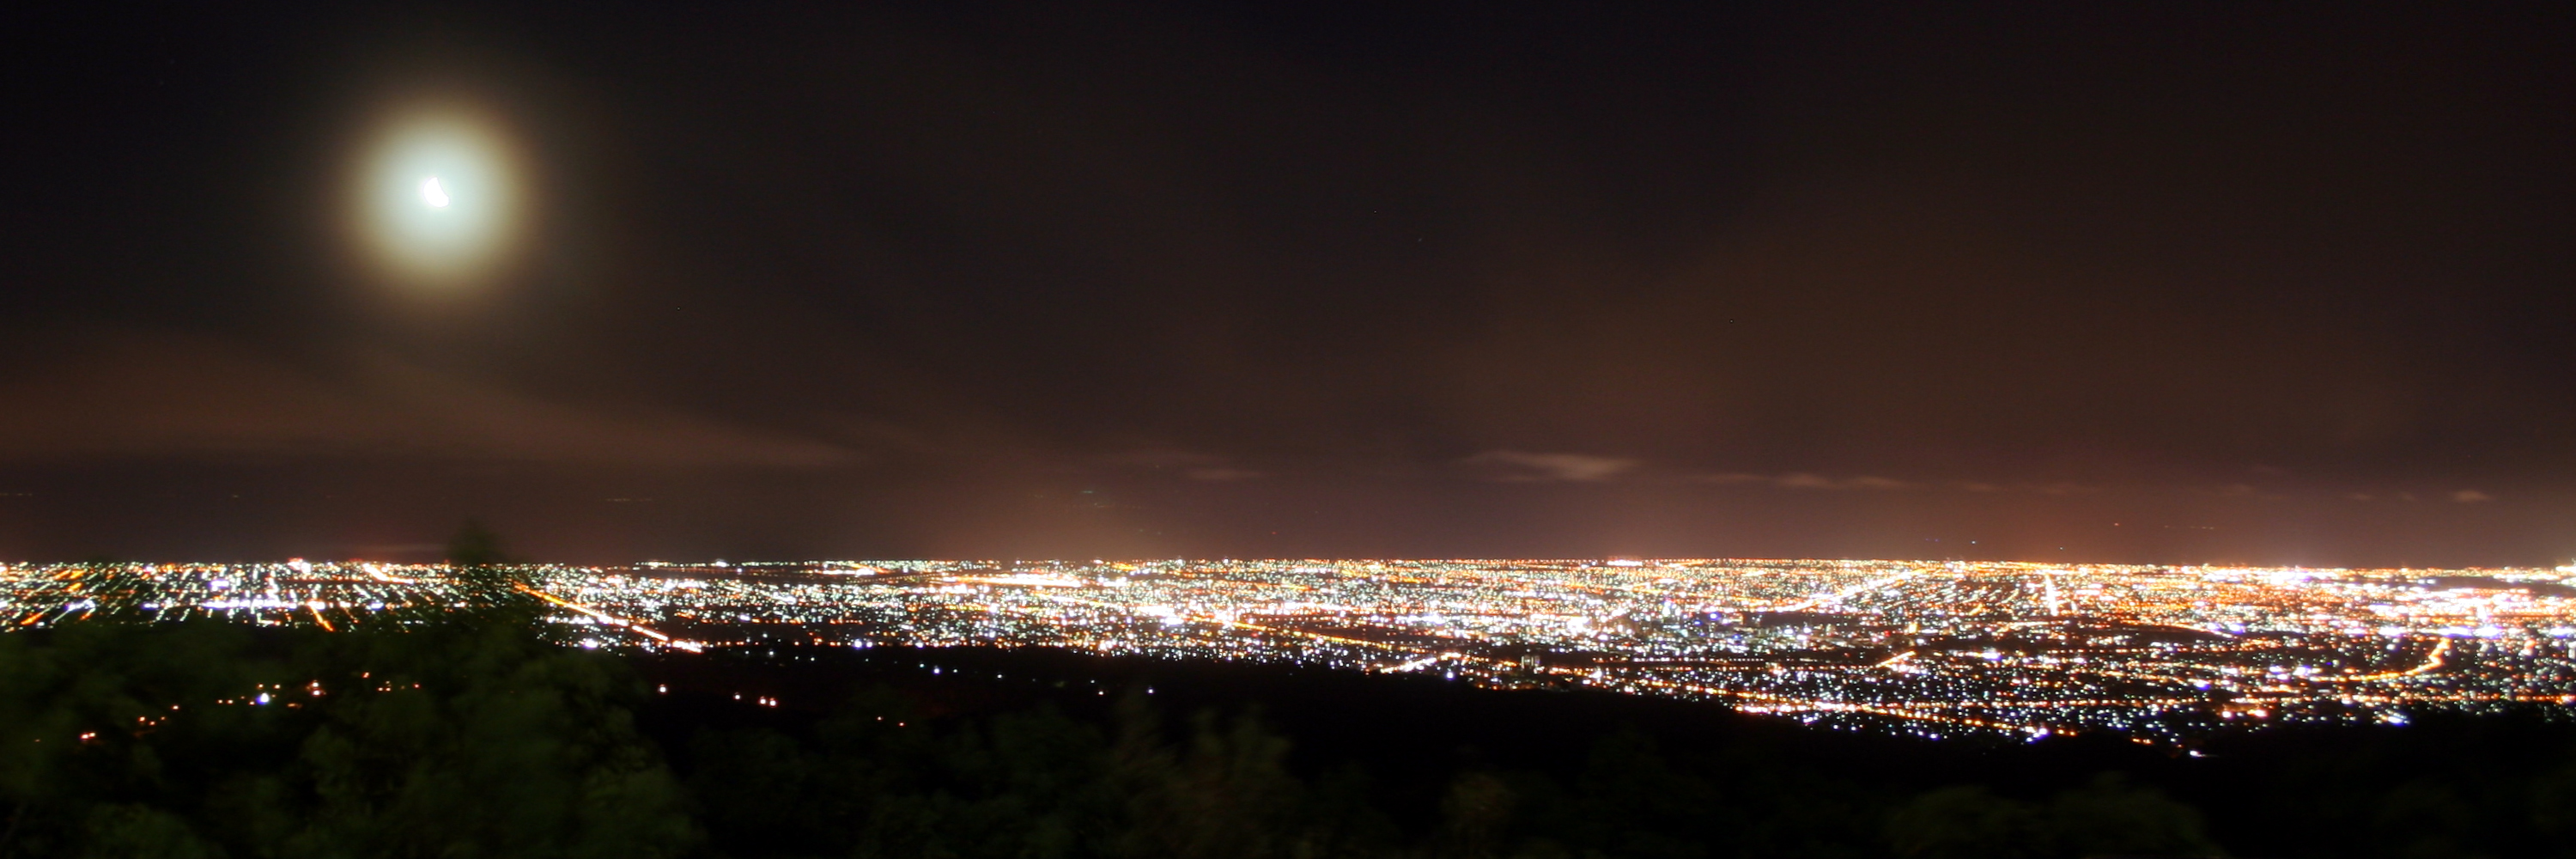 File:Mount Lofty View Night.jpg - Wikimedia Commons Night